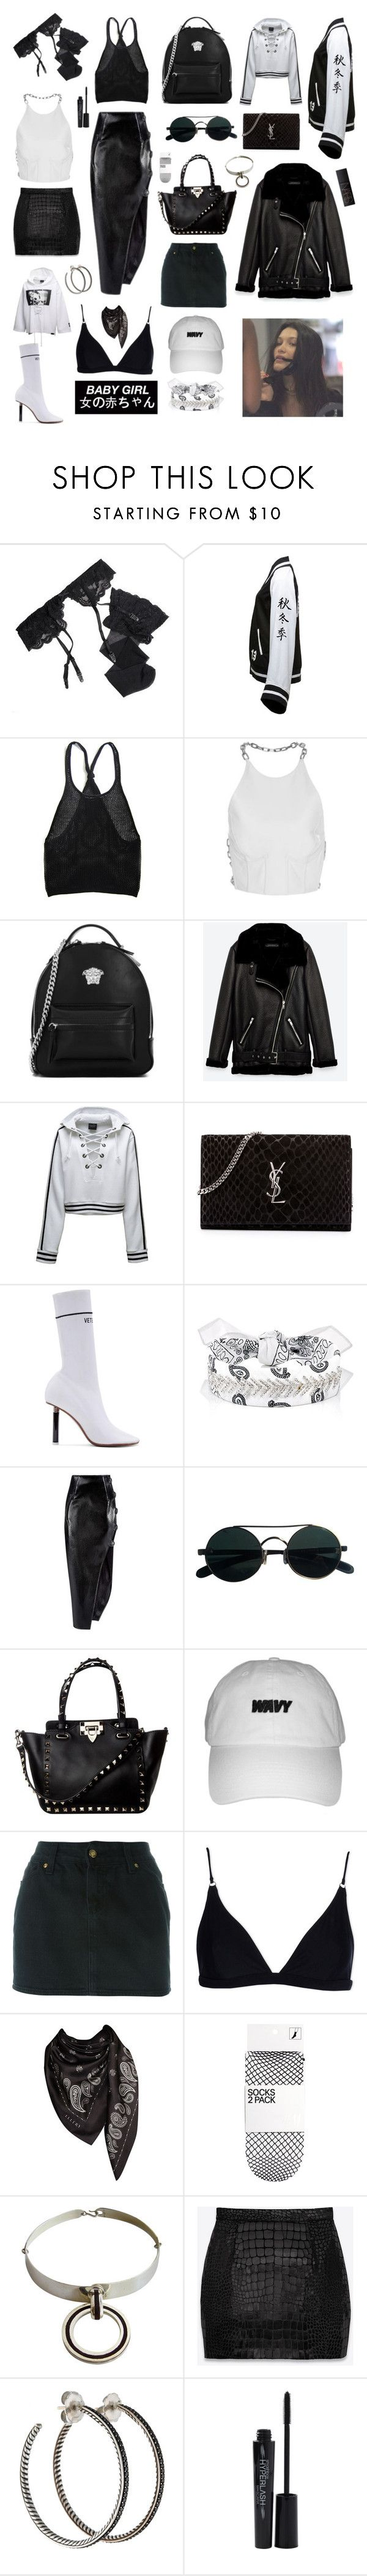 """Untitled #379"" by brookej659 ❤ liked on Polyvore featuring Reger by Janet Reger, Puma, Alexander Wang, Versace, Yves Saint Laurent, Vetements, Fallon, Anthony Vaccarello, Jean-Paul Gaultier and Acne Studios"